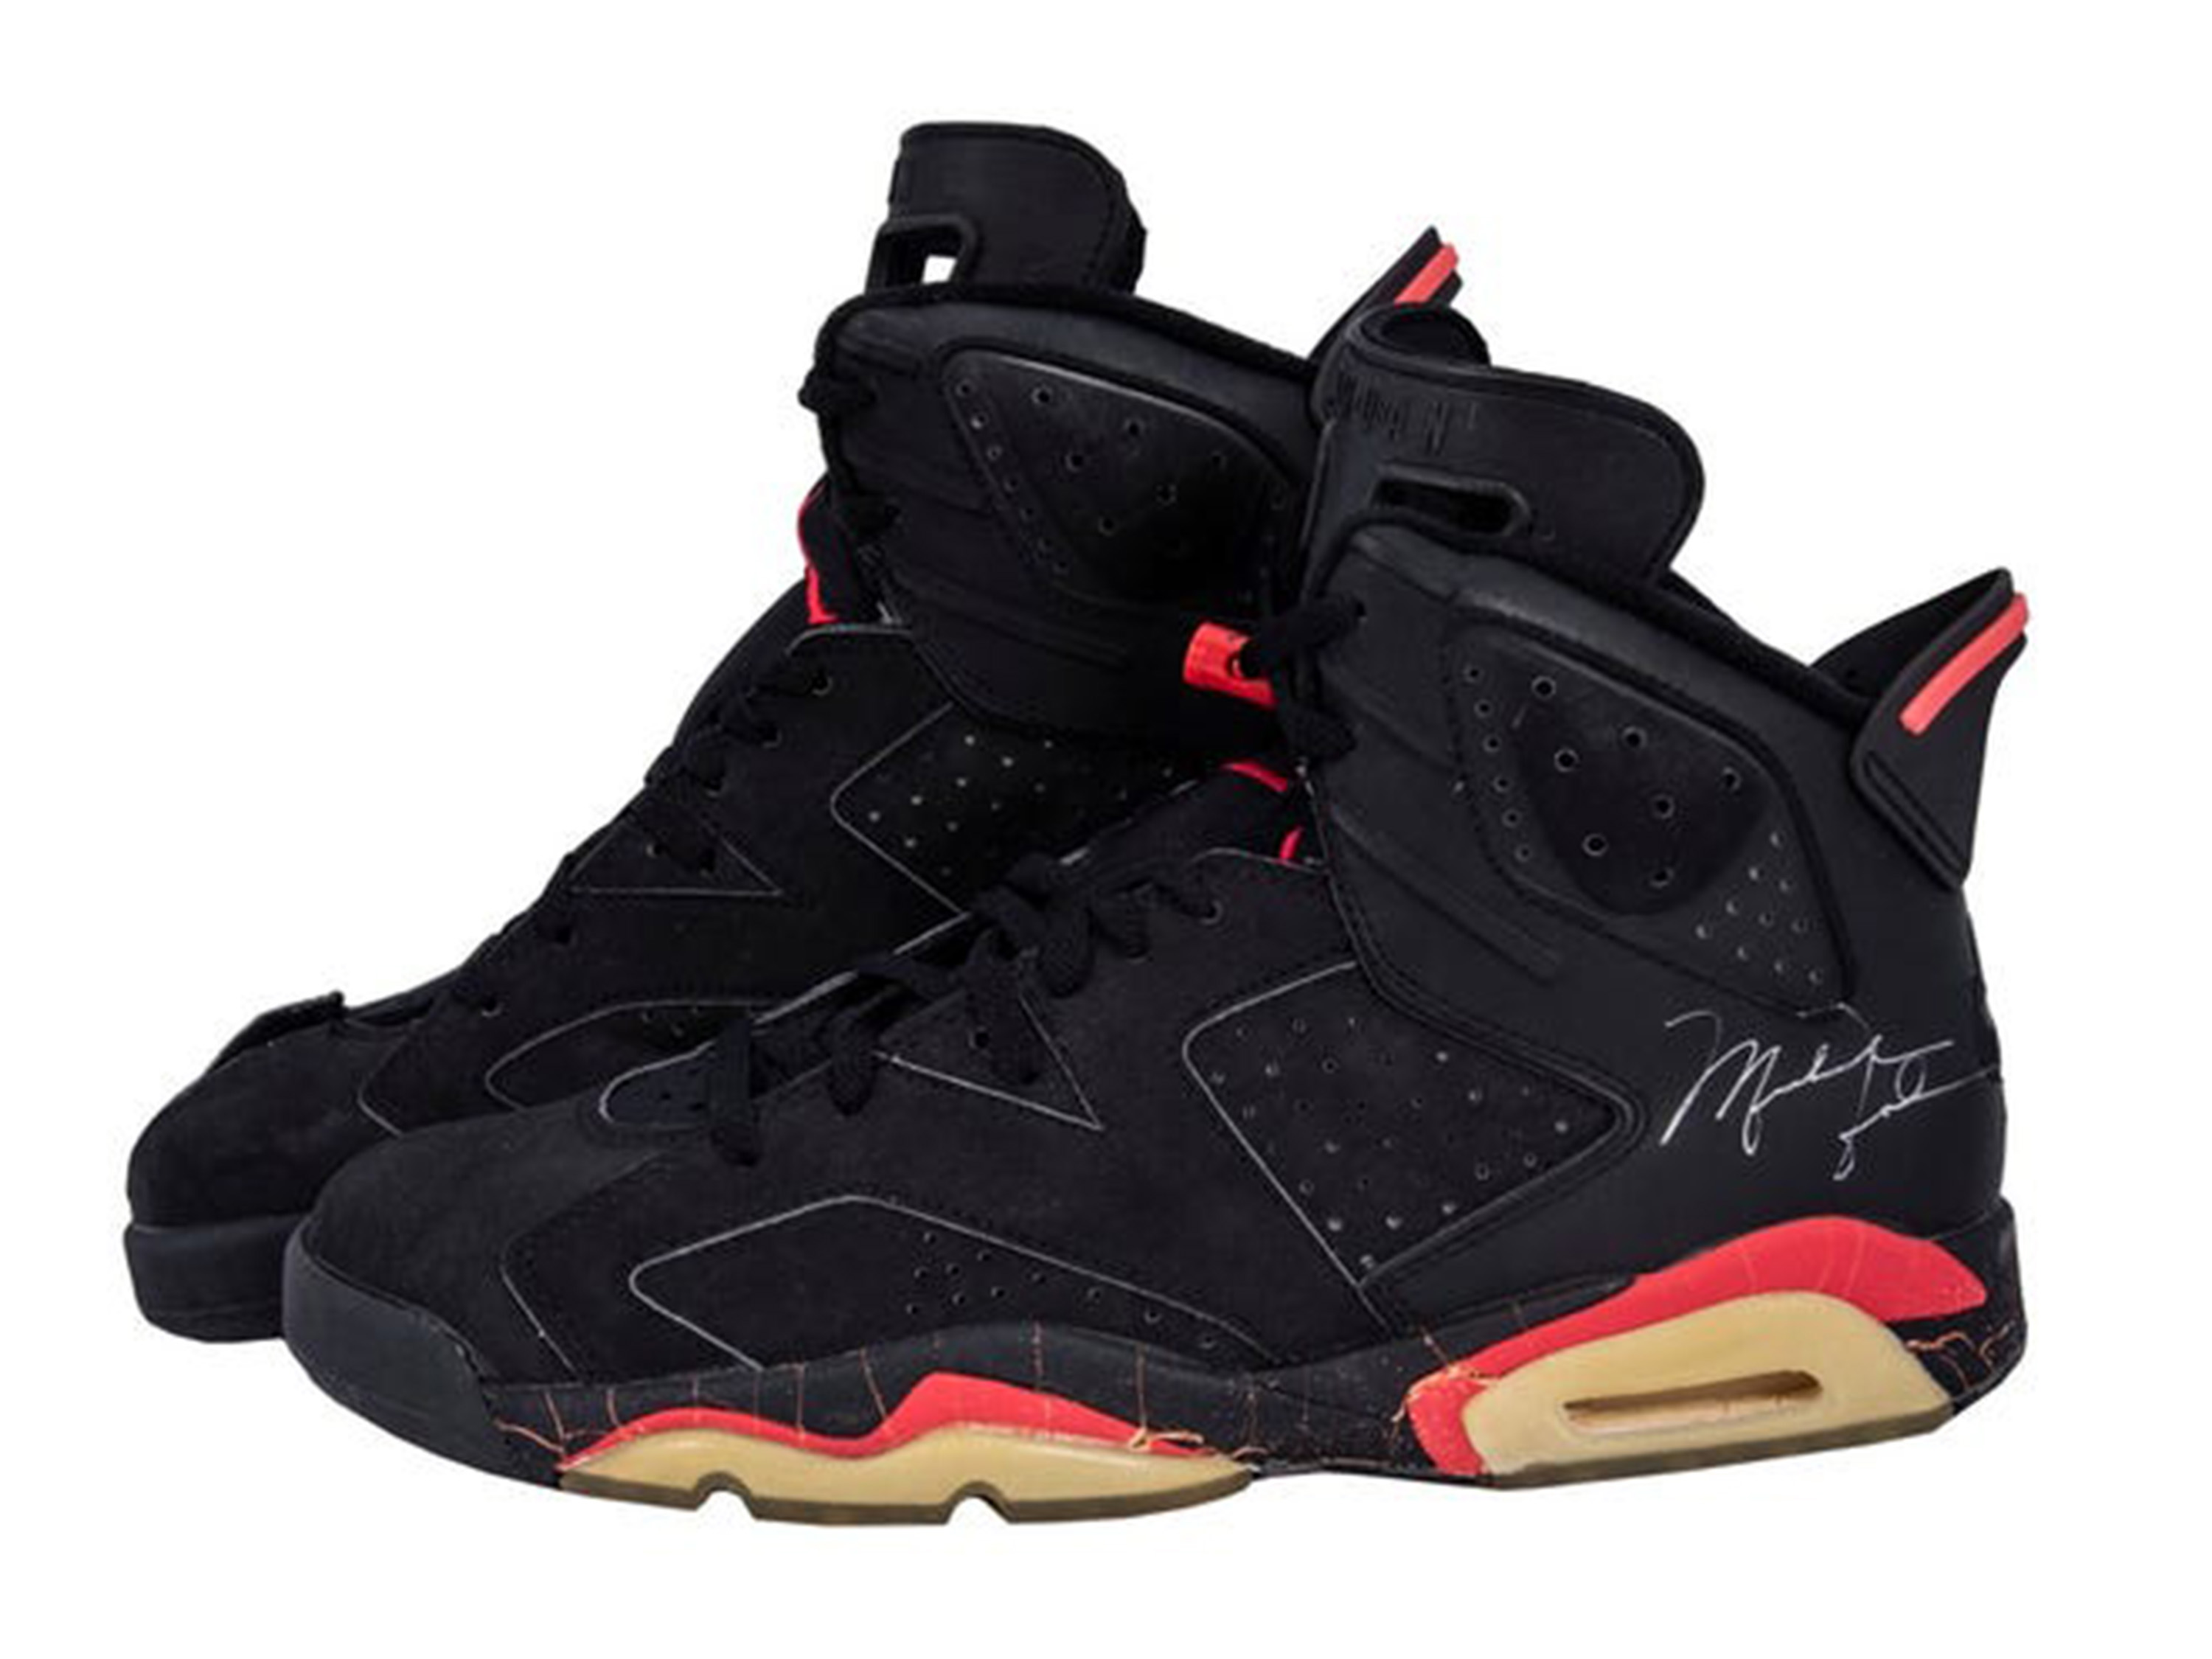 The signed (and cut) pair of Air Jordans that Jordan wore in Game 4 of the 1991 Finals.